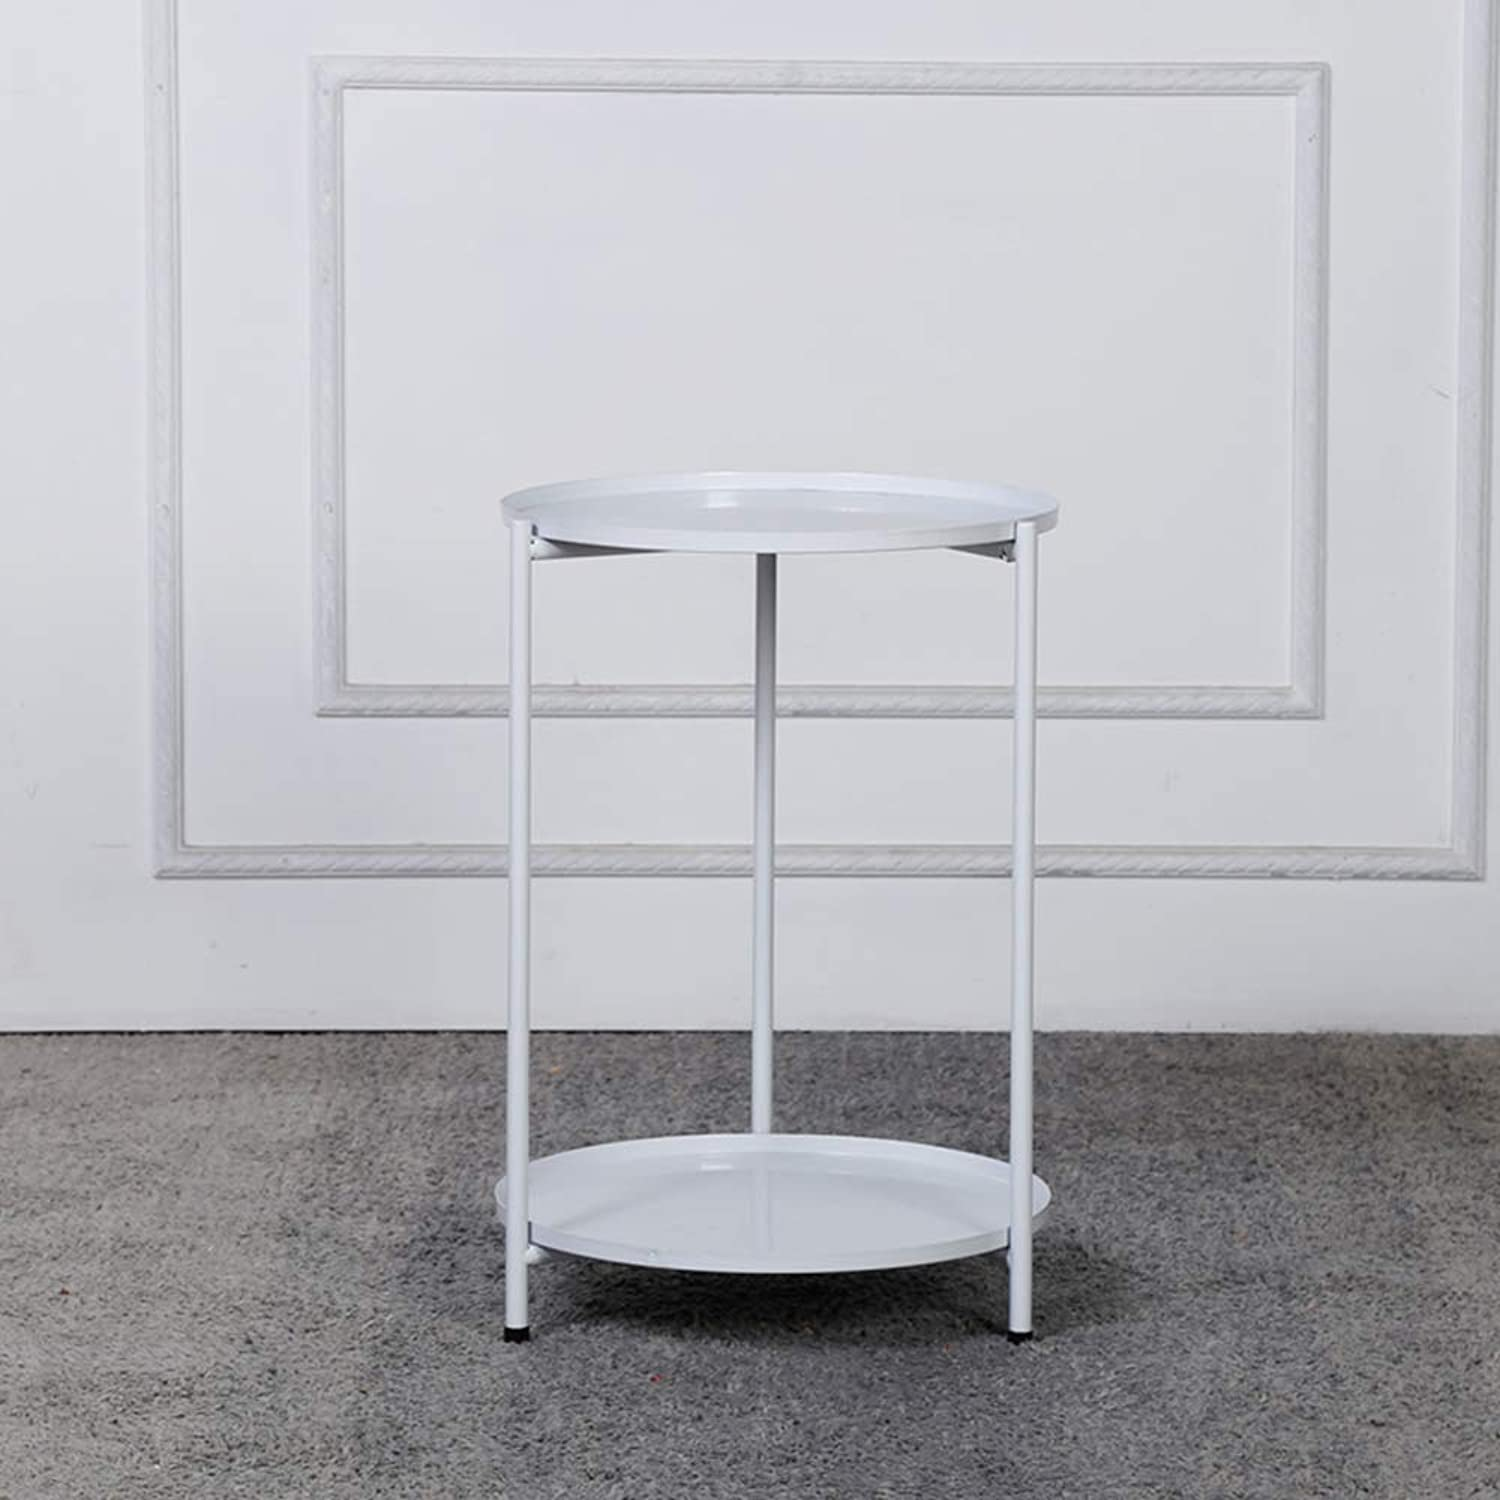 HUO,Coffee Tables Iron Balcony Small Coffee Table Sofa Side Table Living Room Small Round Table Multifunction (color   White)